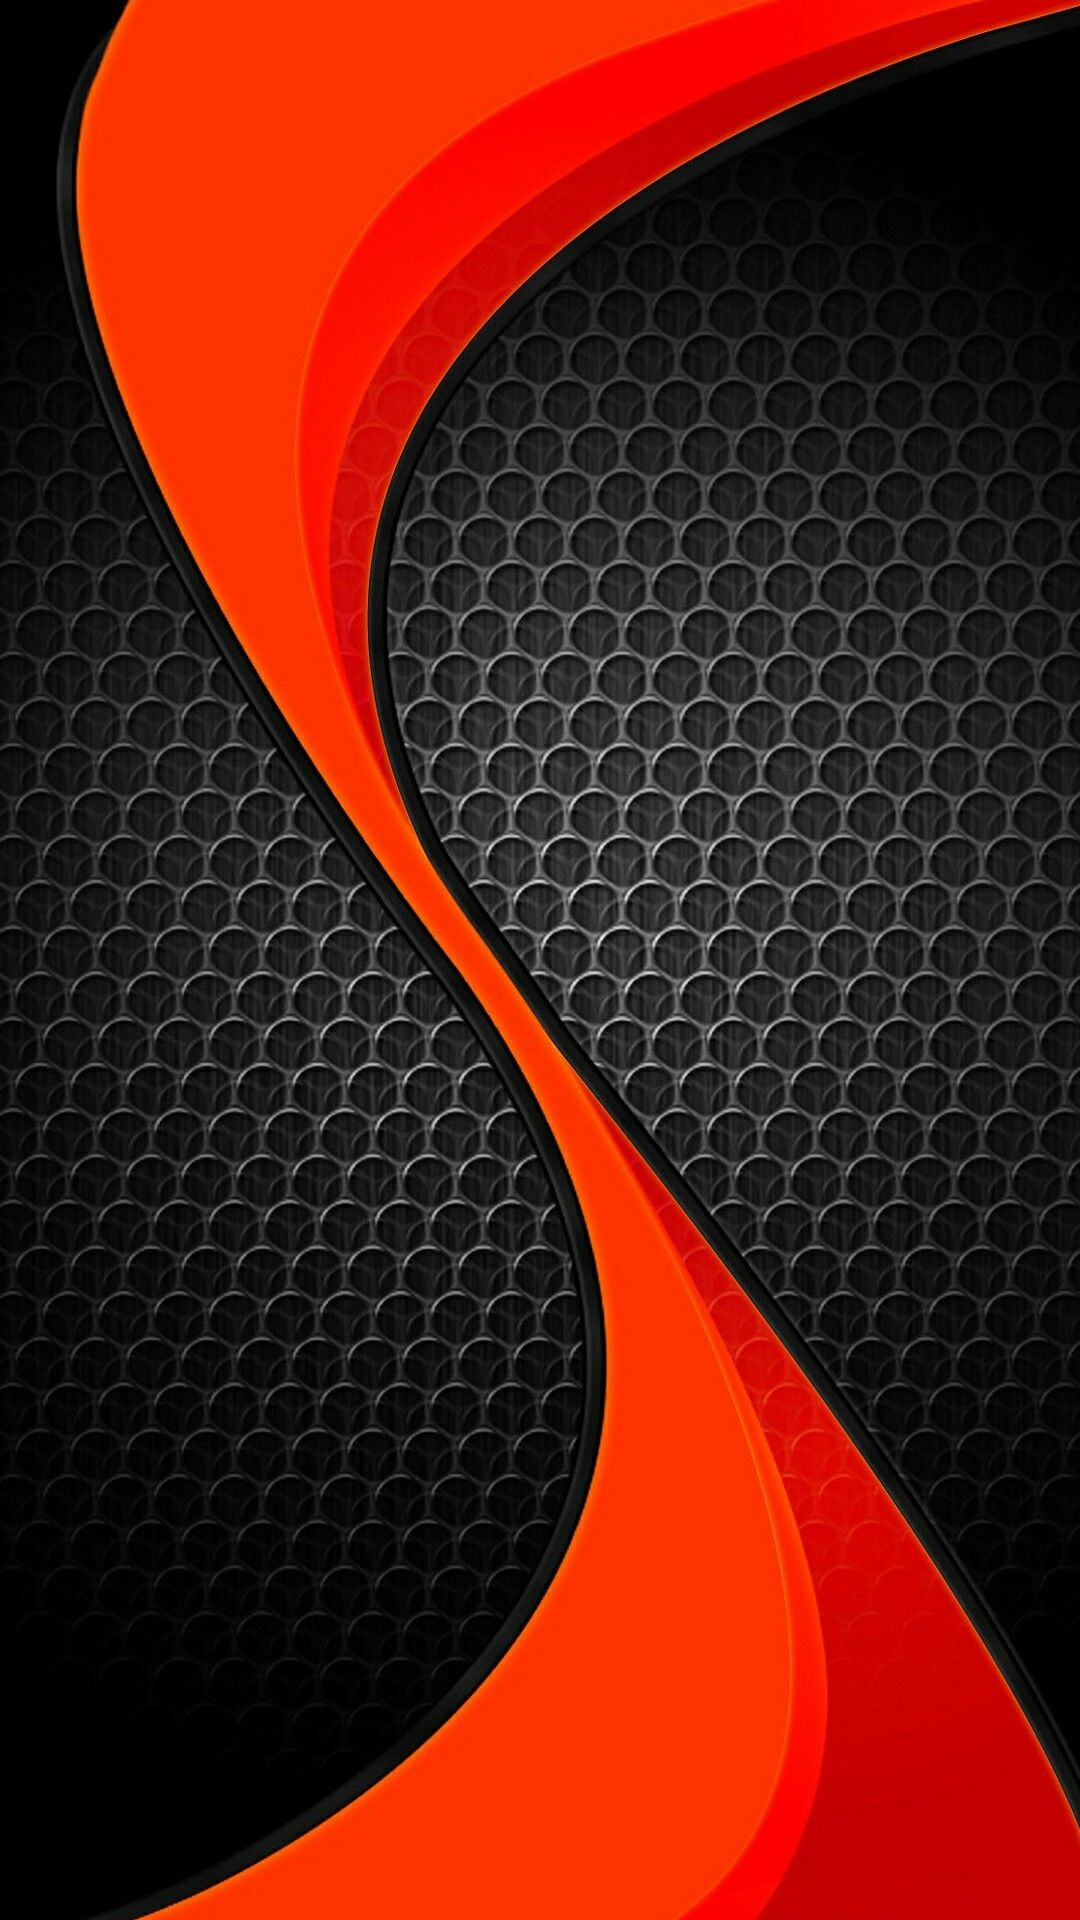 Black and RedOrange Abstract Wallpaper Abstract